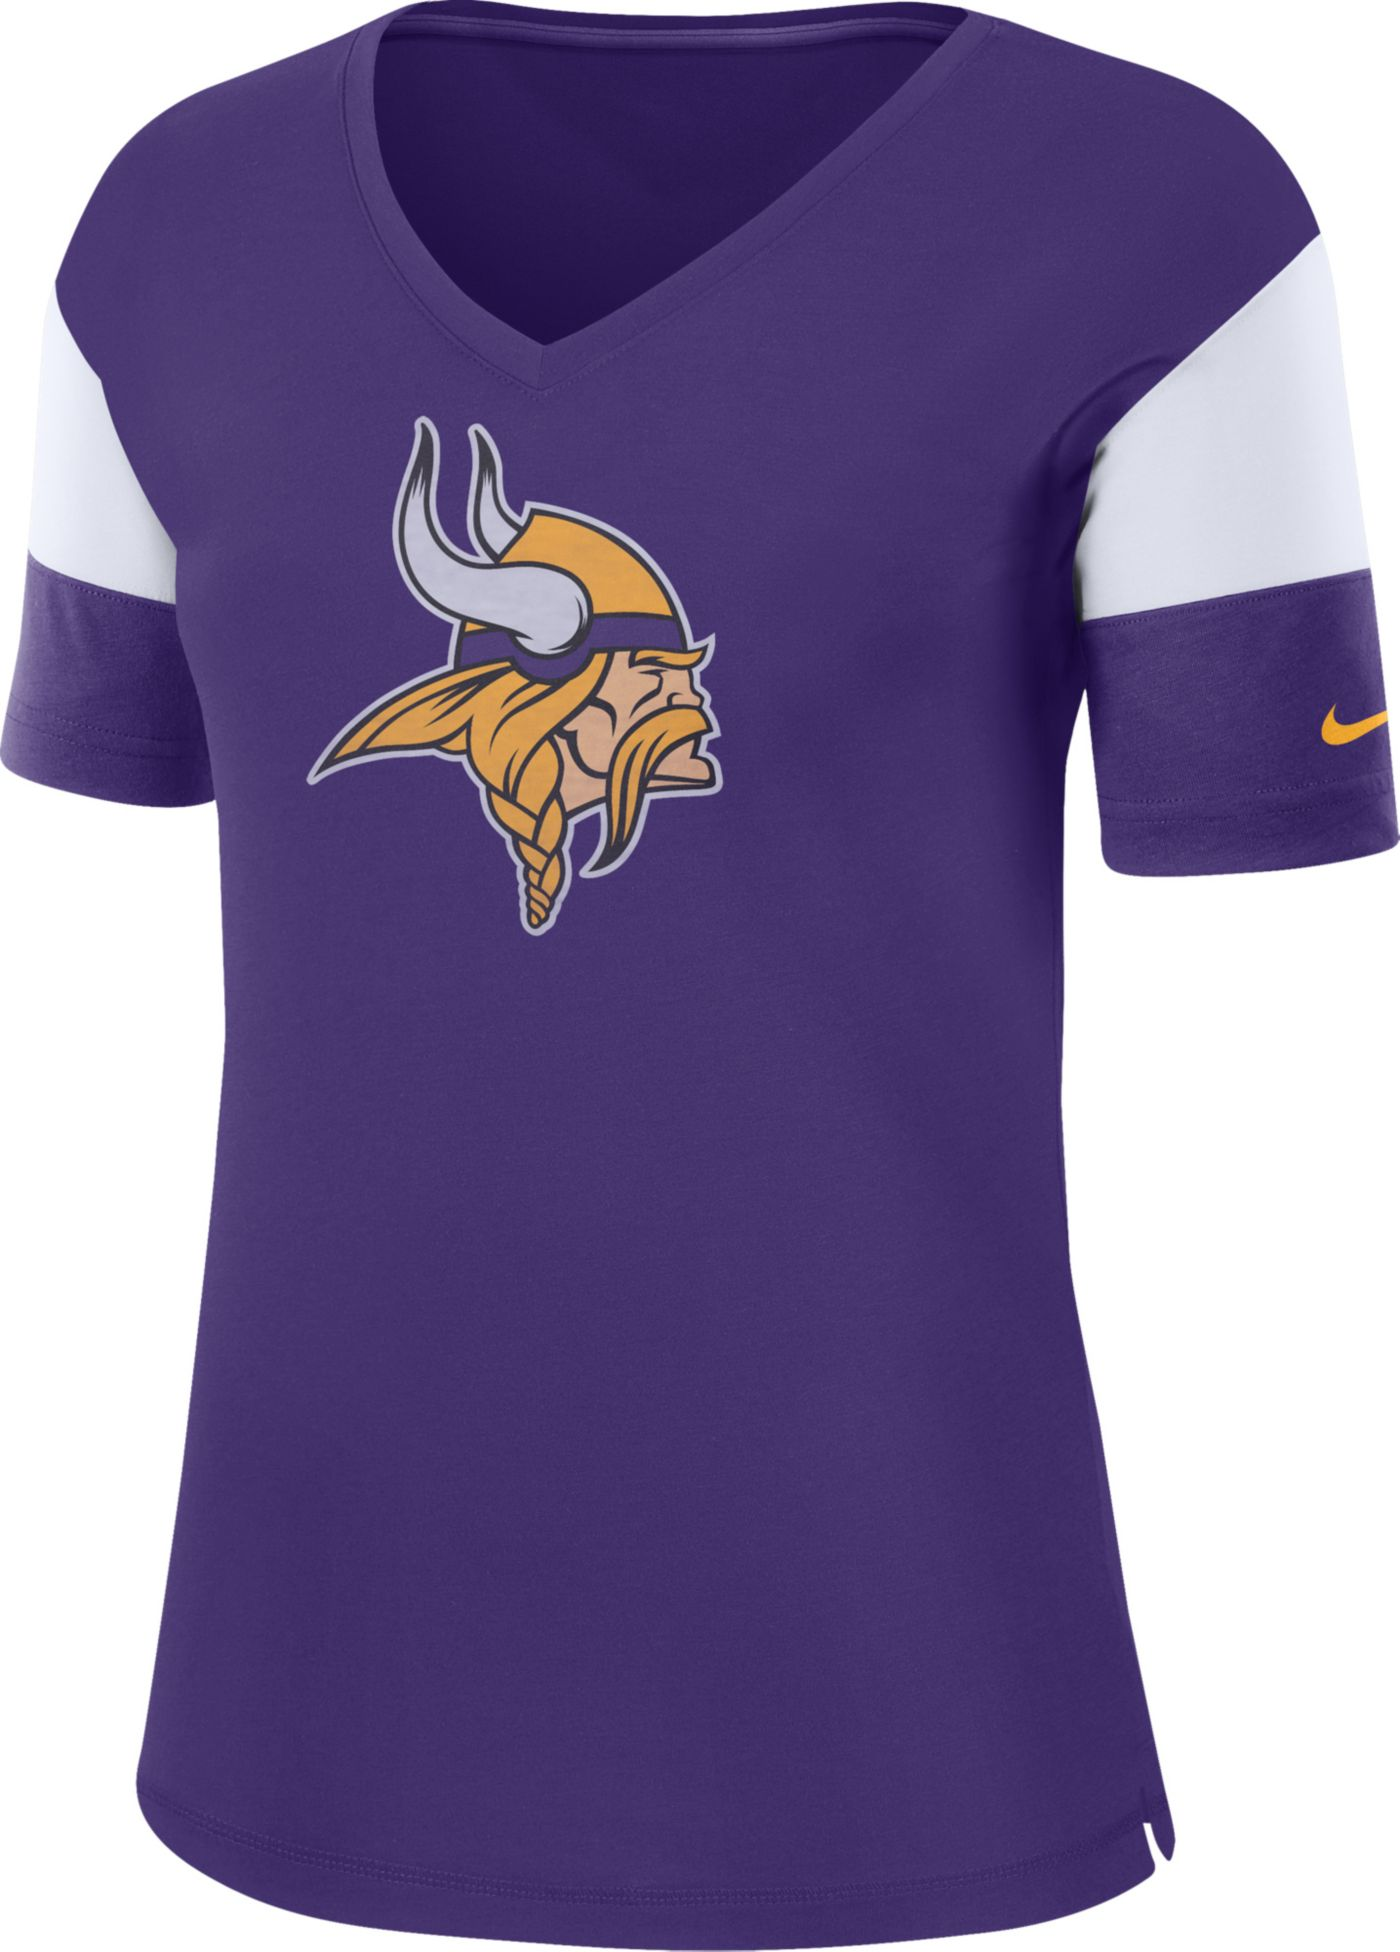 Nike Women's Minnesota Vikings Breathe Purple V-Neck T-Shirt